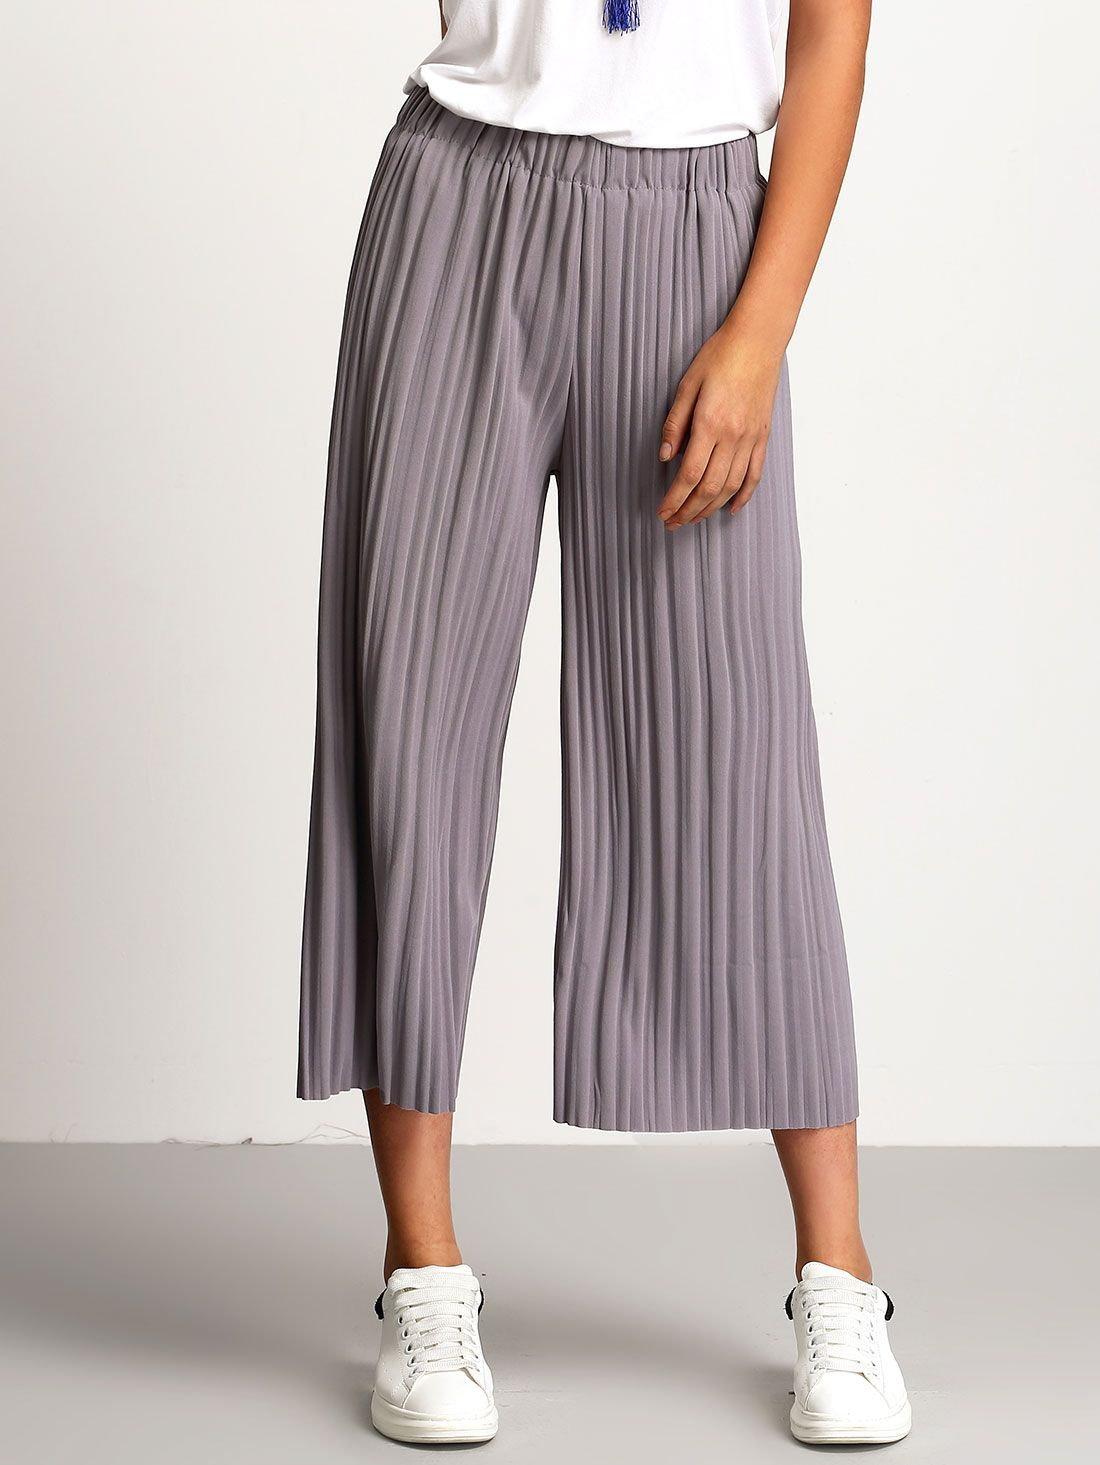 Elastic Waist Pleated Wide Leg Pant | Pleated pants and Elastic waist